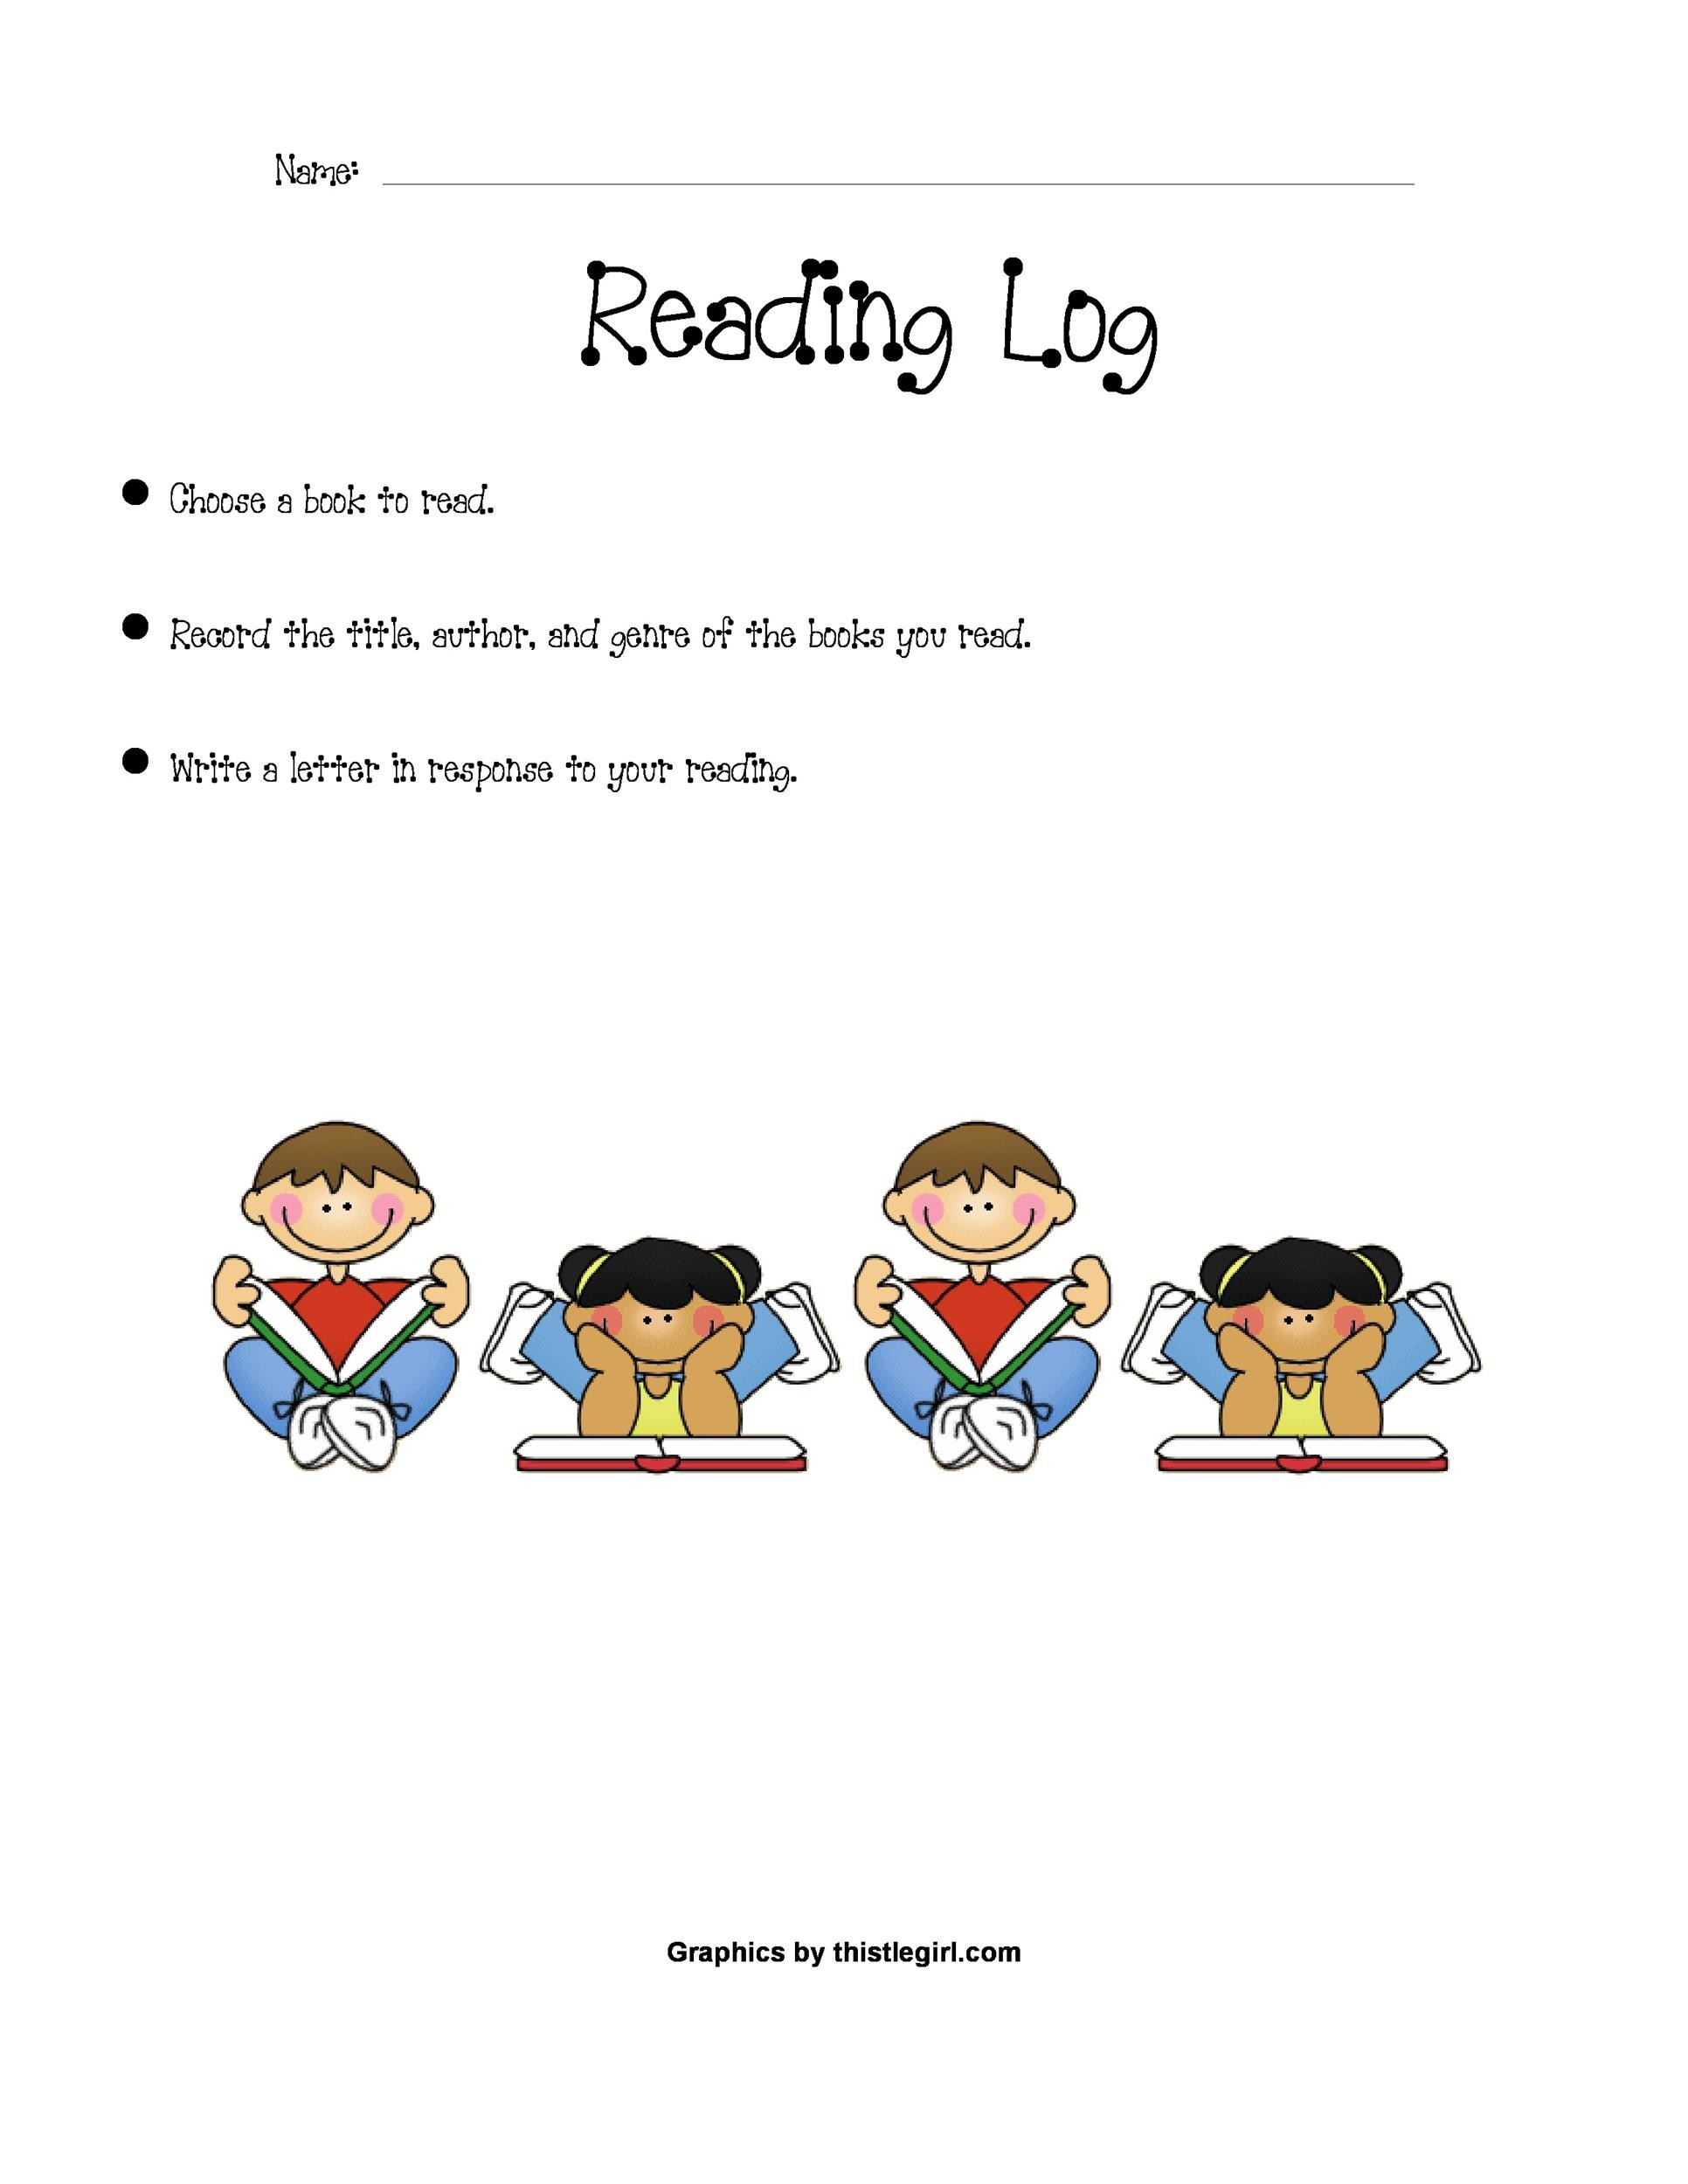 Eloquent image with regard to book log printable